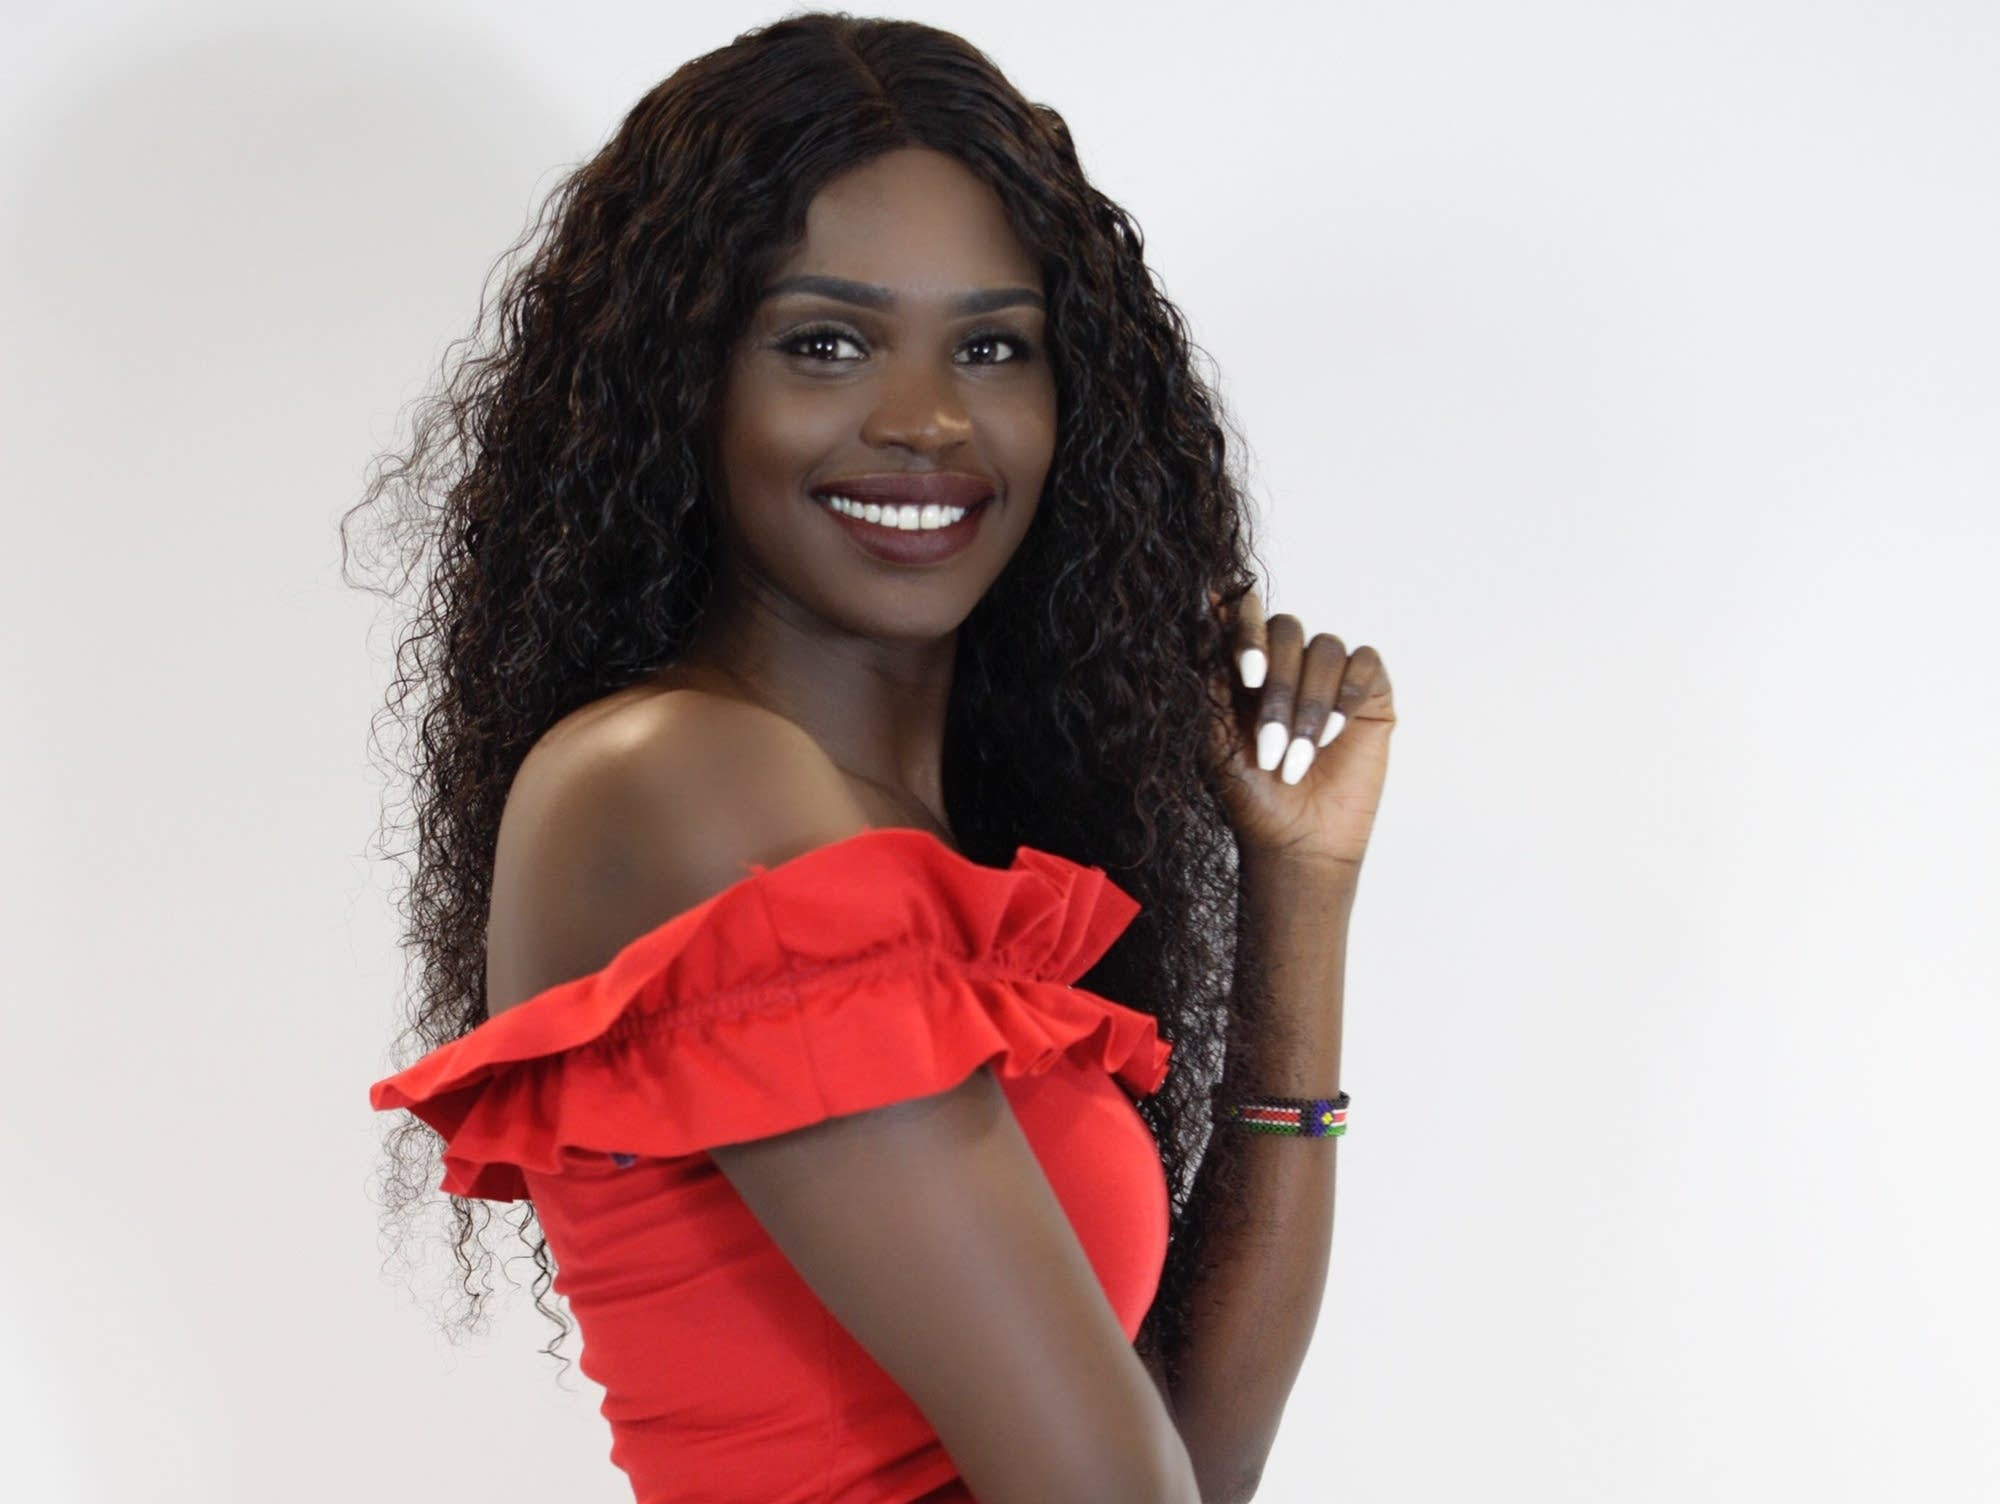 Awel Lam of Duluth is competing in the Miss South Sudan USA